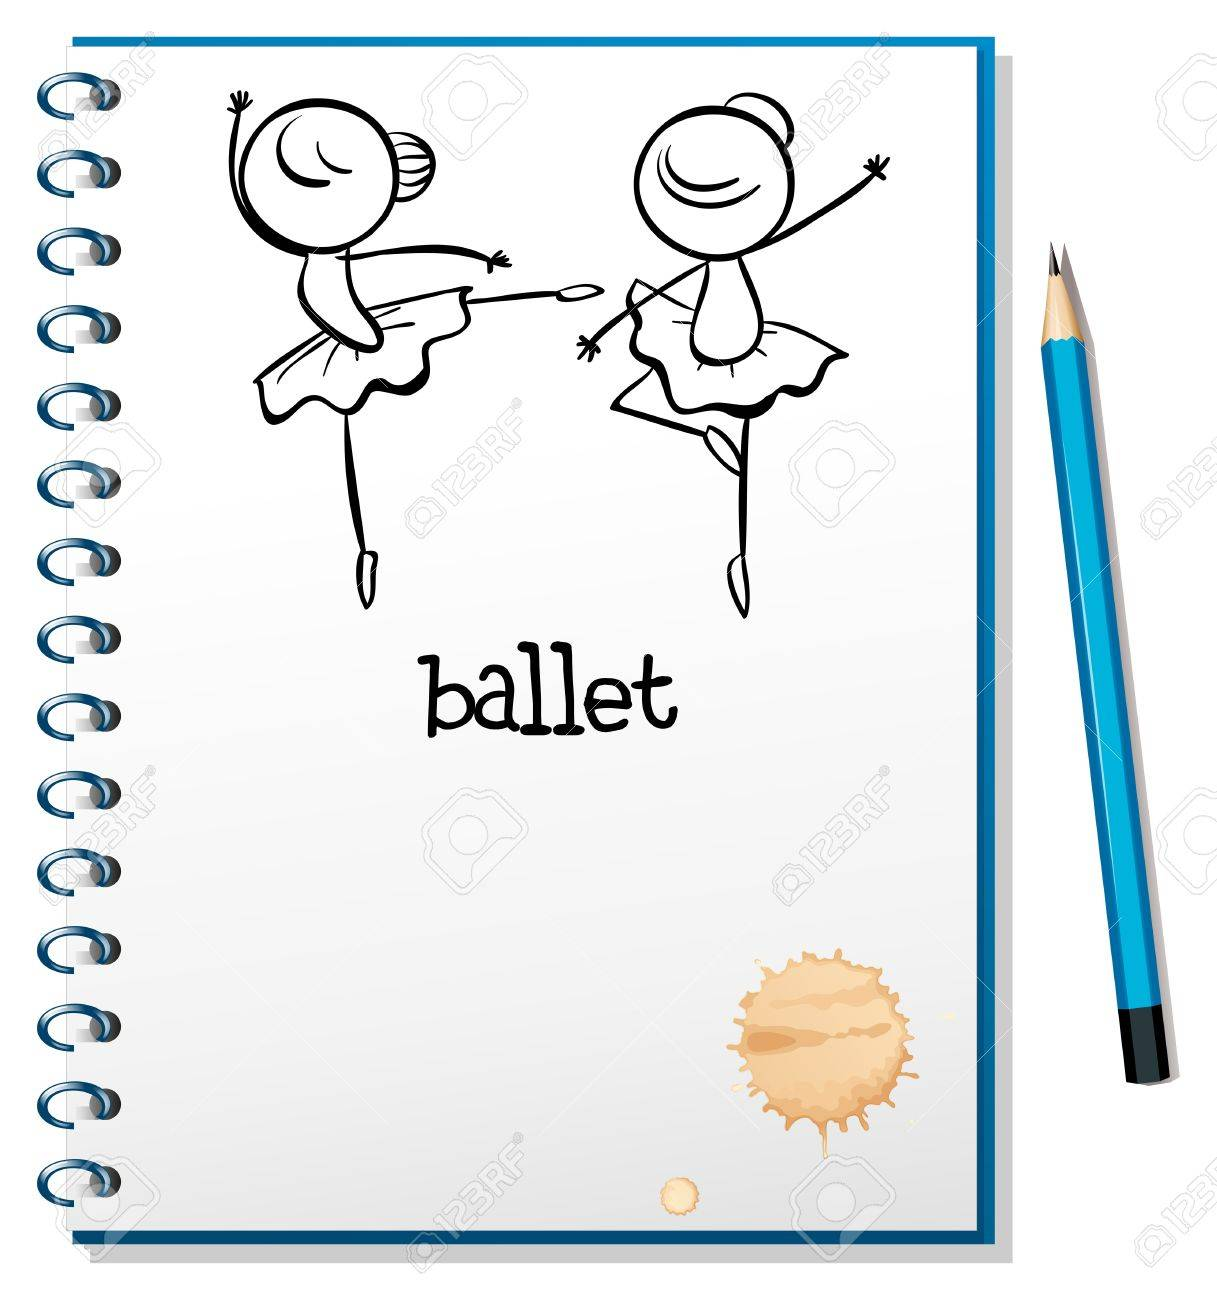 Illustration of a notebook with ballet dancers at the cover page on a white background Stock Vector - 19413691